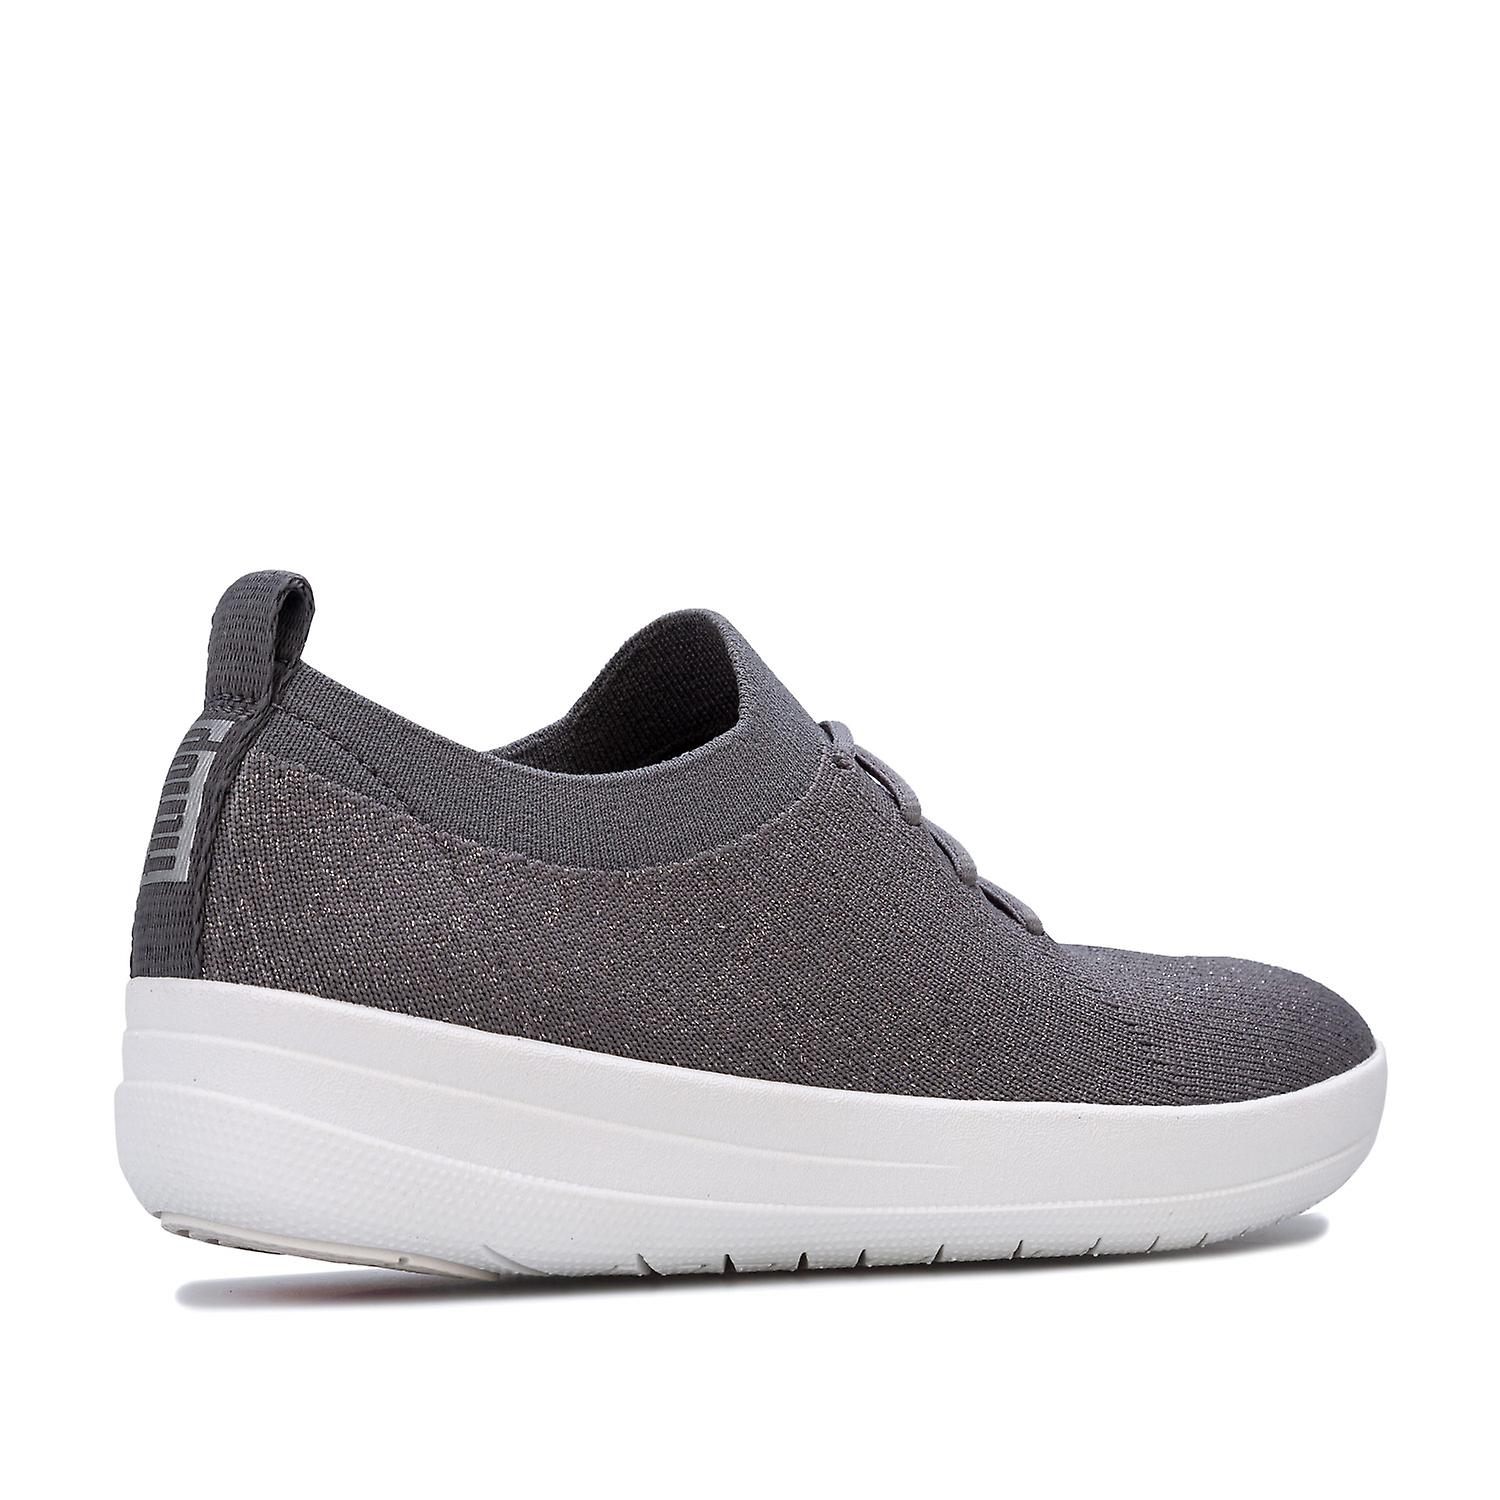 Womens FitFlop F Sporty Uberknit Trainers in charcoal metallic pewter.